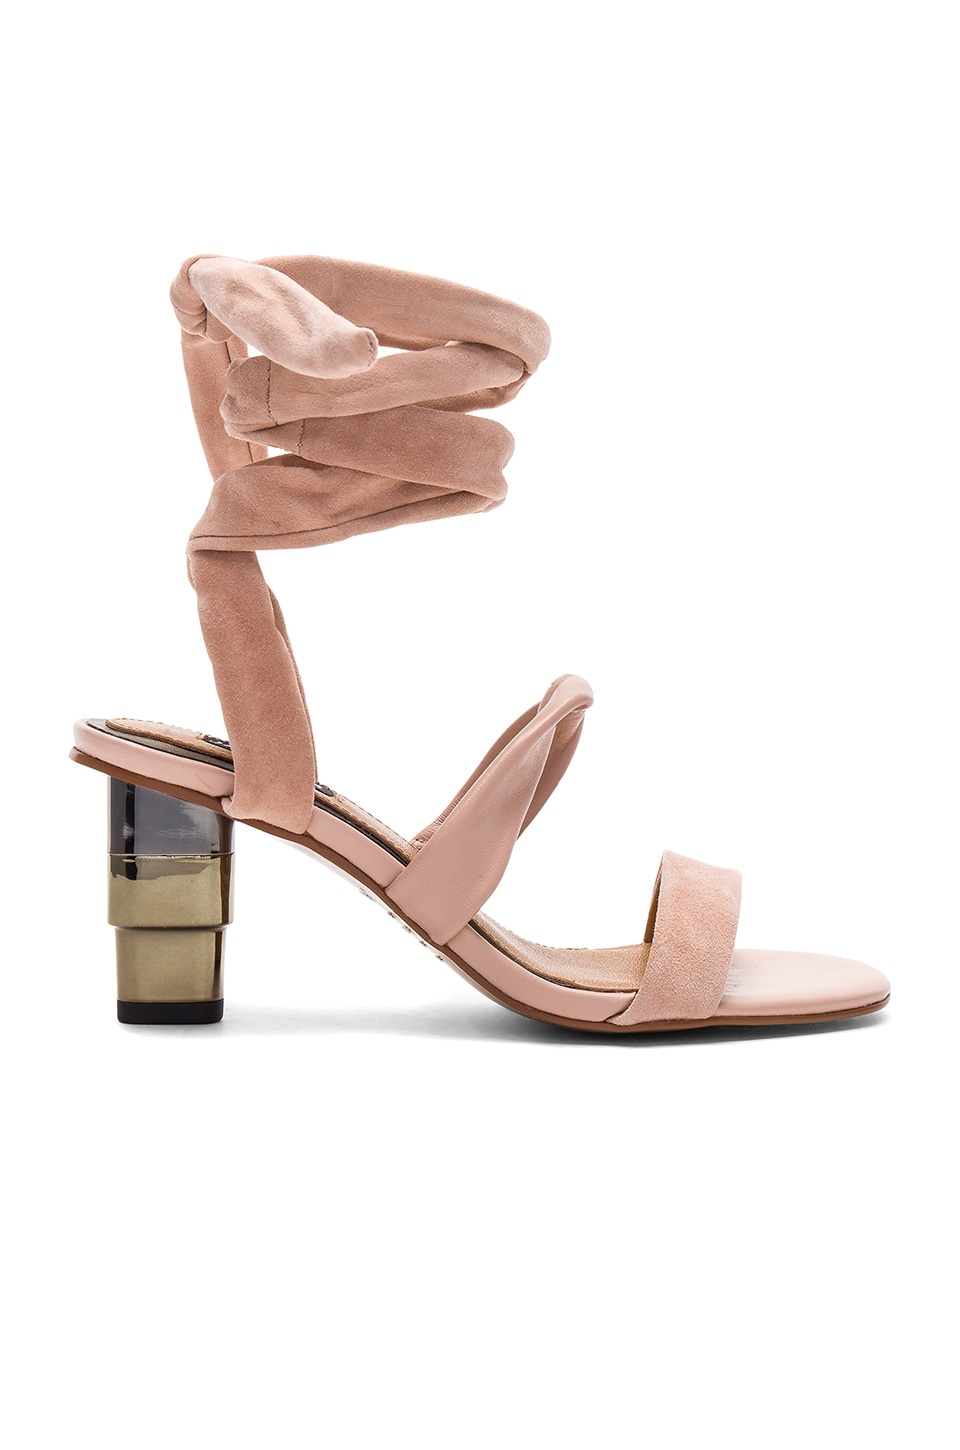 JAGGAR Triple Metal Heel in Nude